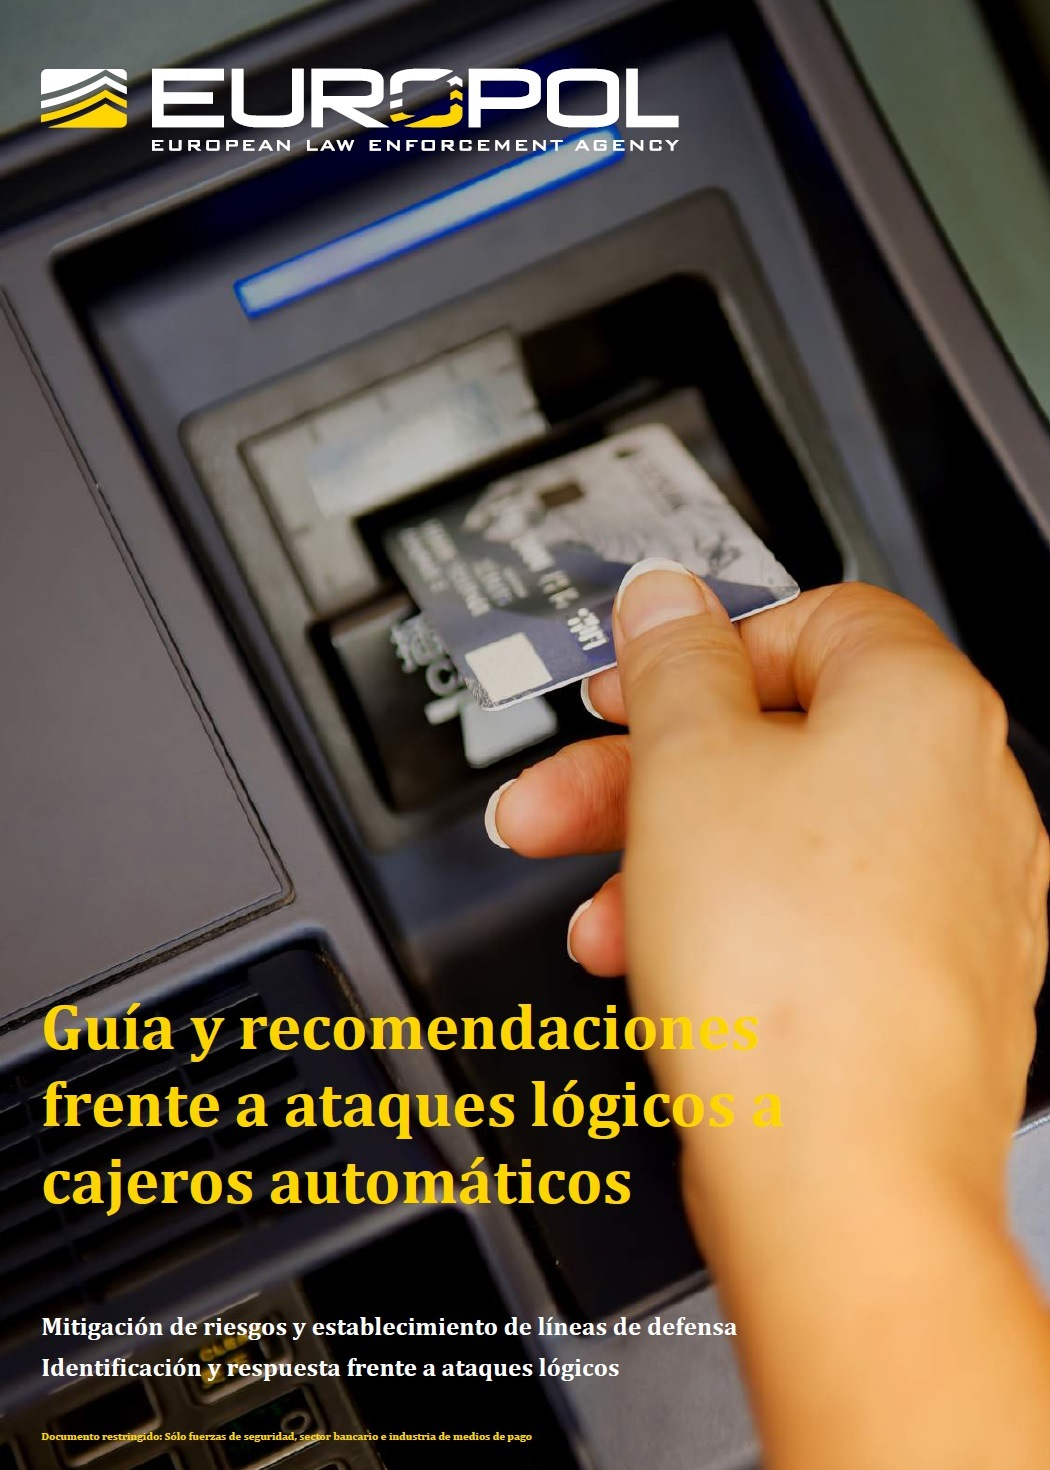 ATM Malware Guidelines - Spanish